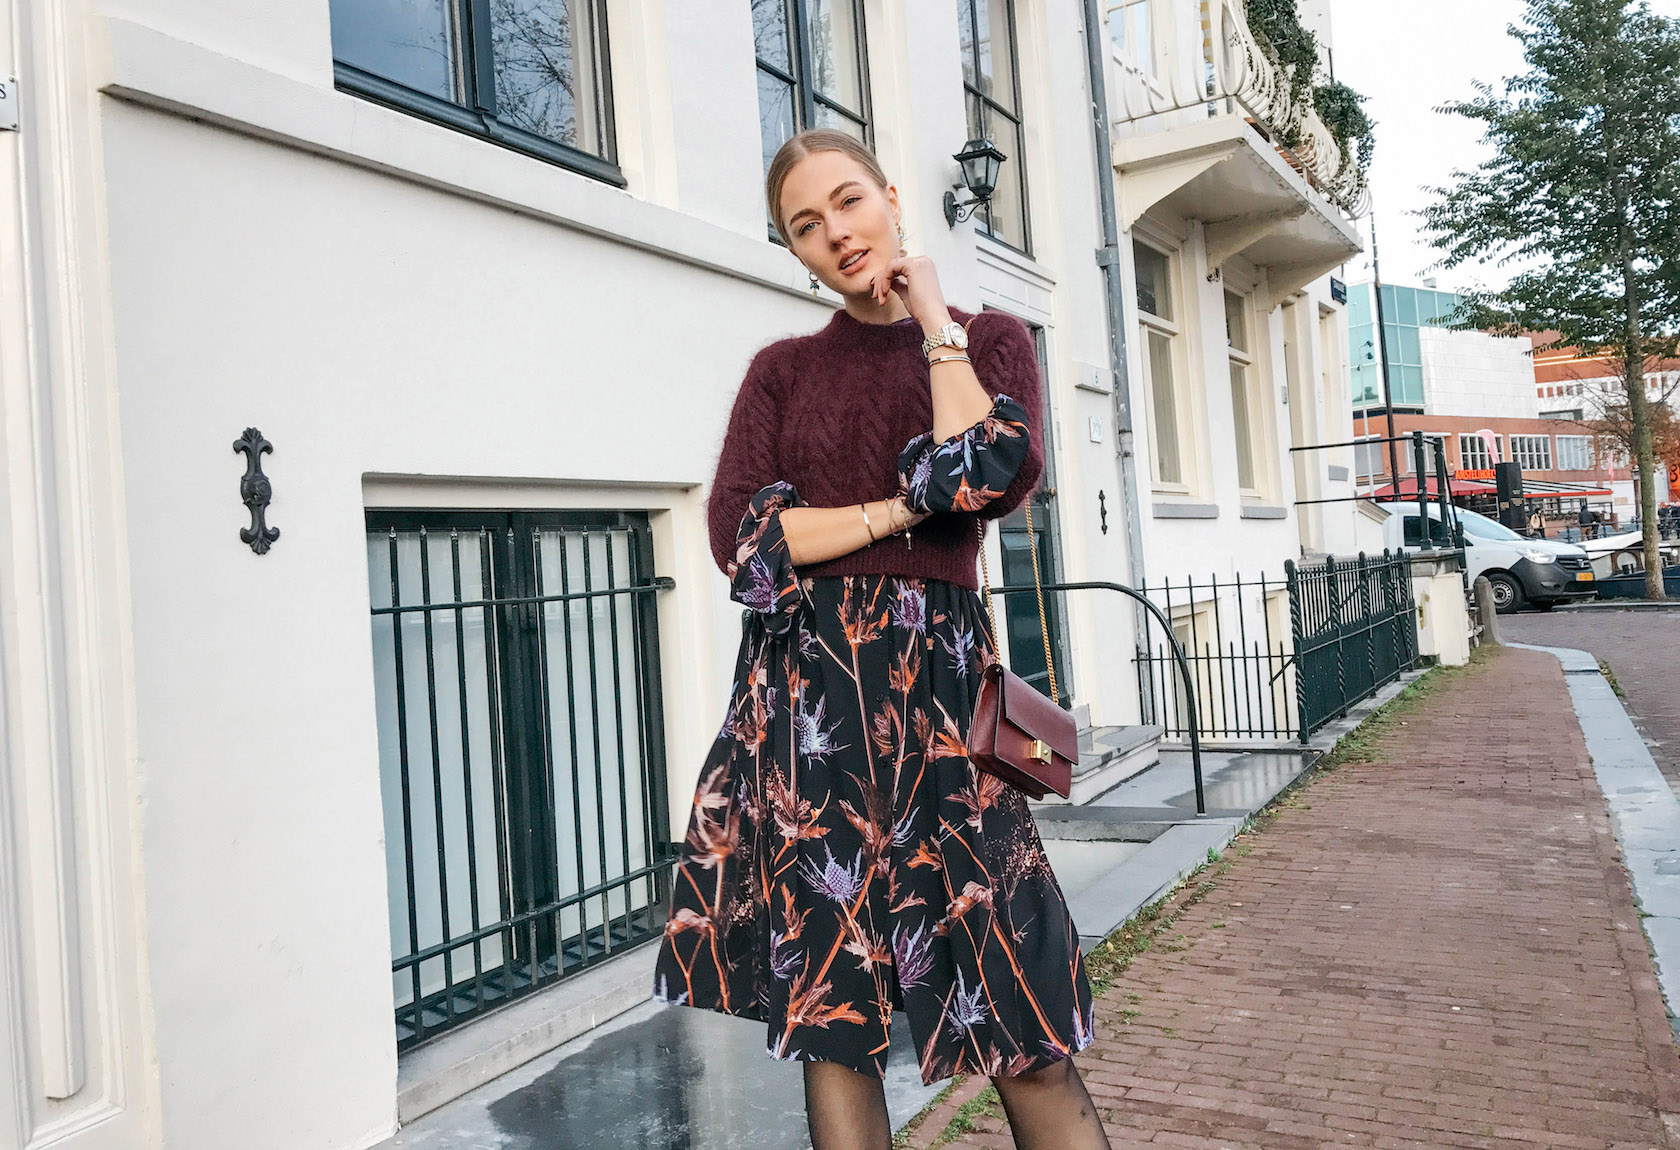 Floortjeloves, cropped sweater, floral, floral print, floral dress, weekday, wolford, H&M, ERDEM, ERDEM X H&M, H&M X ERDEM, river island, mulberry